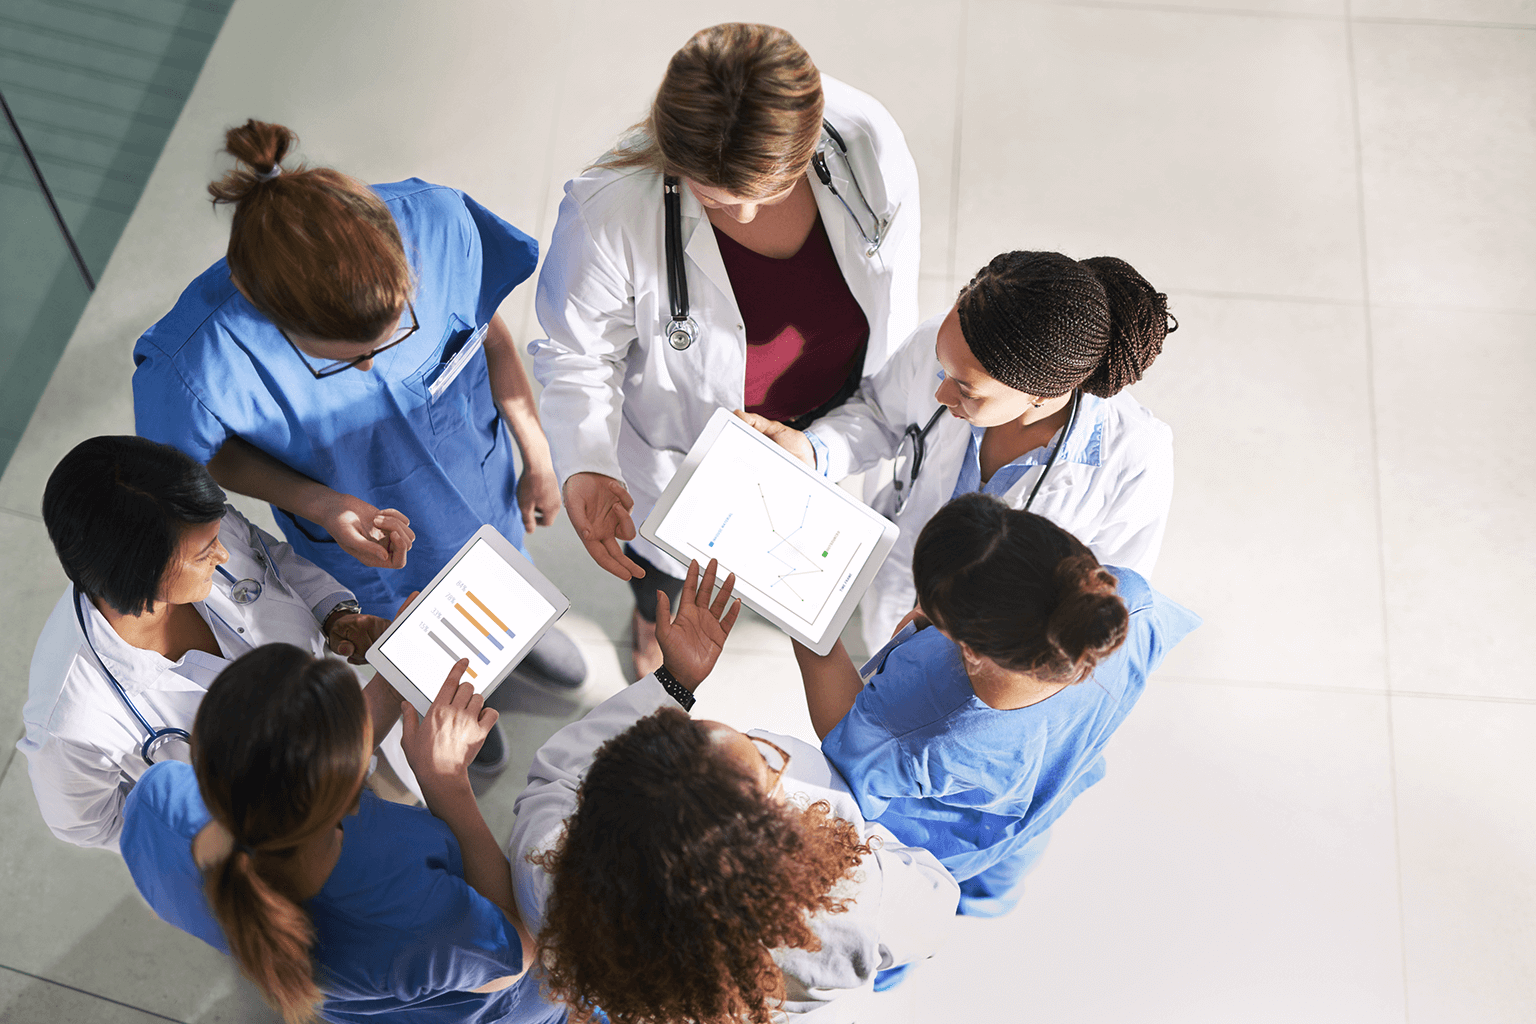 group-of-clinicians-reviewing-results